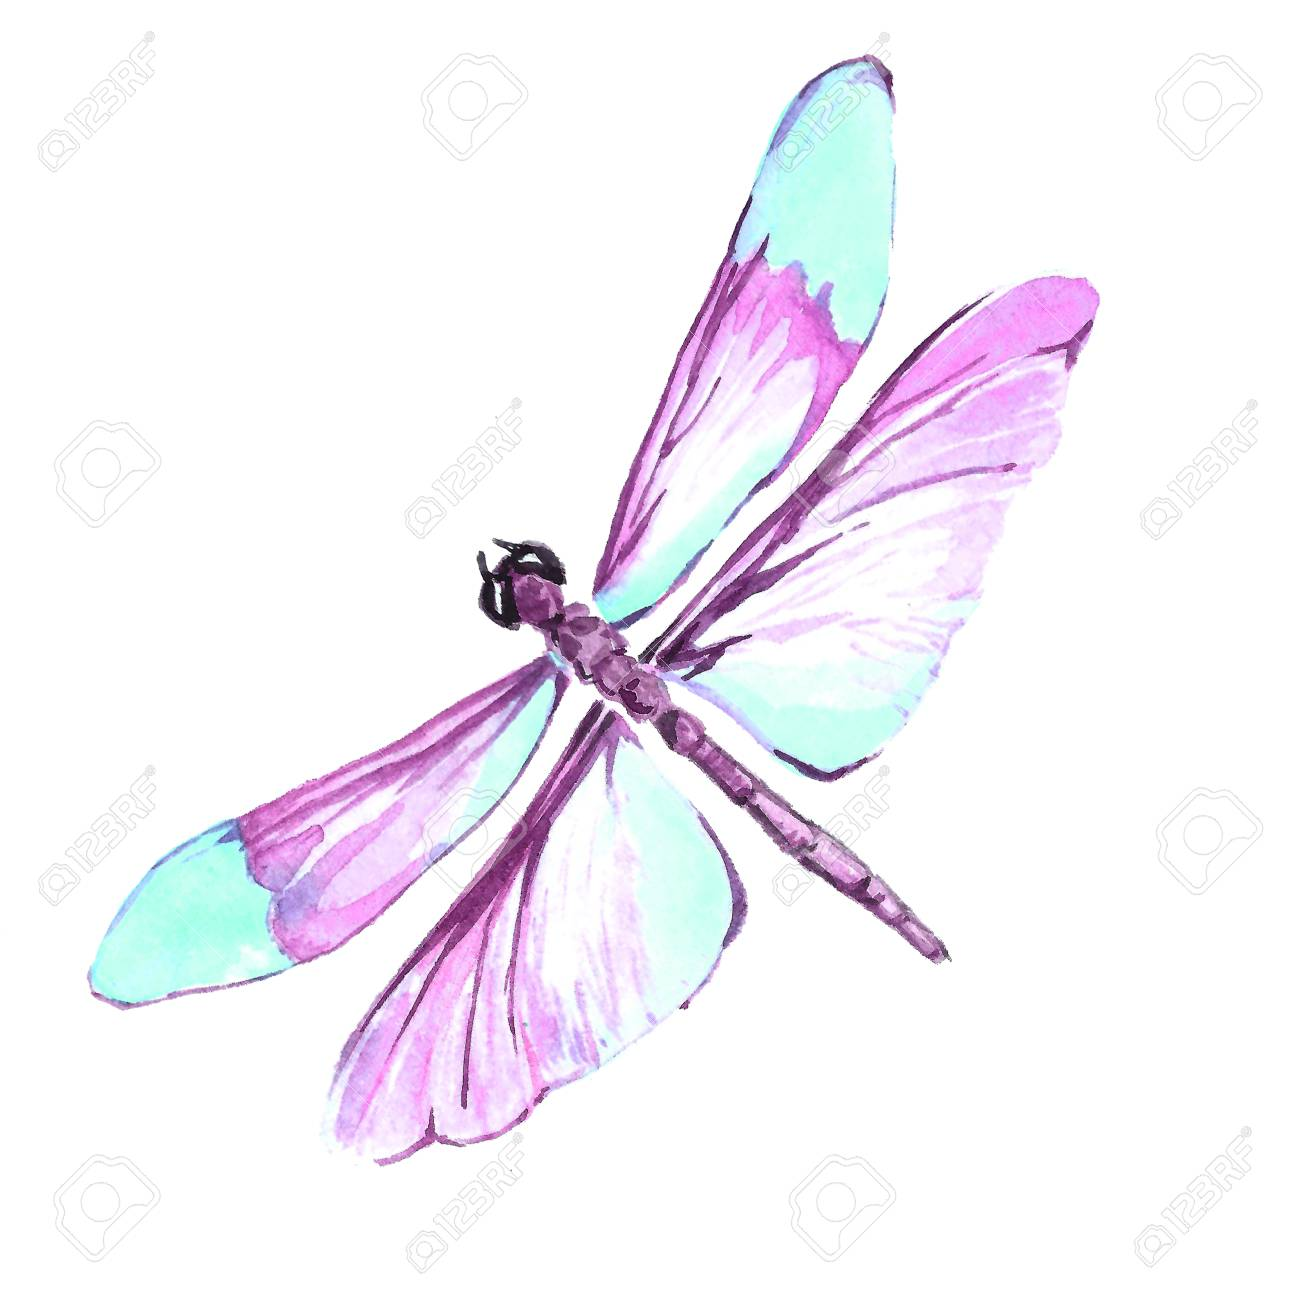 watercolor image of a dragonfly on a white background isolated